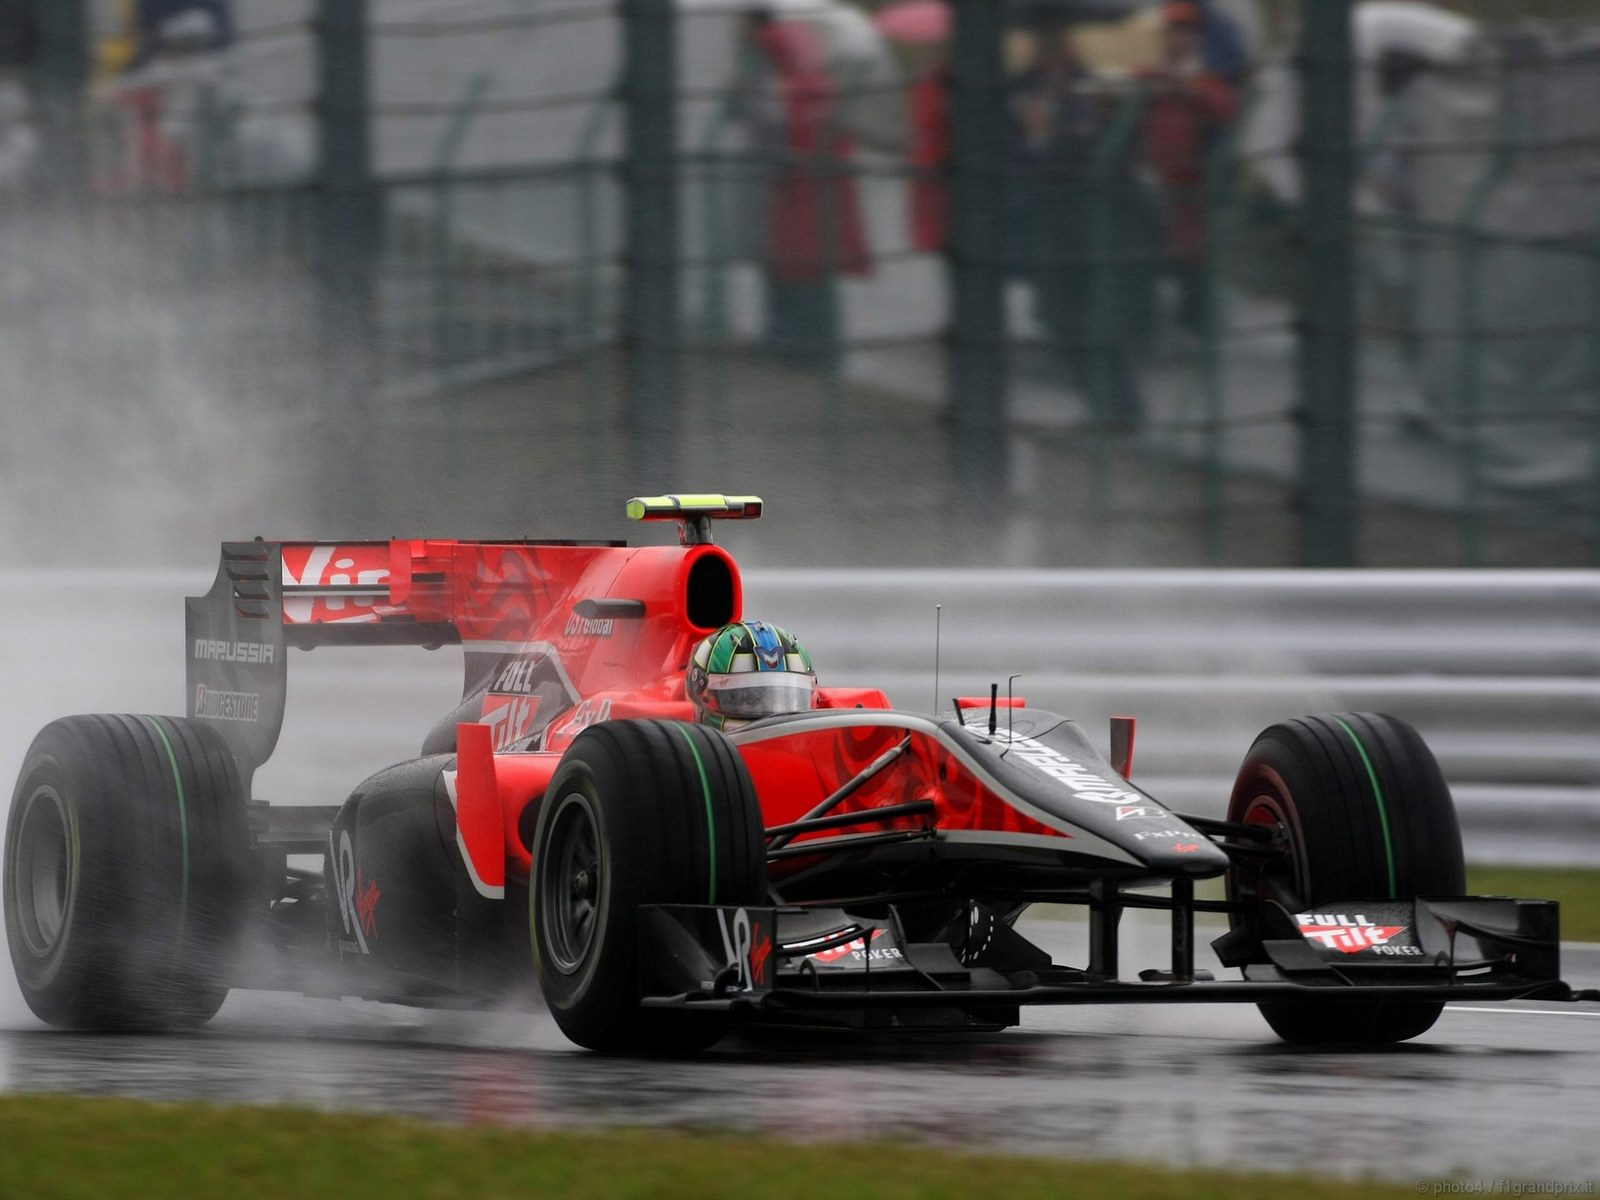 pojazdy - formula1 - gp_giappone_wallpapers_000083